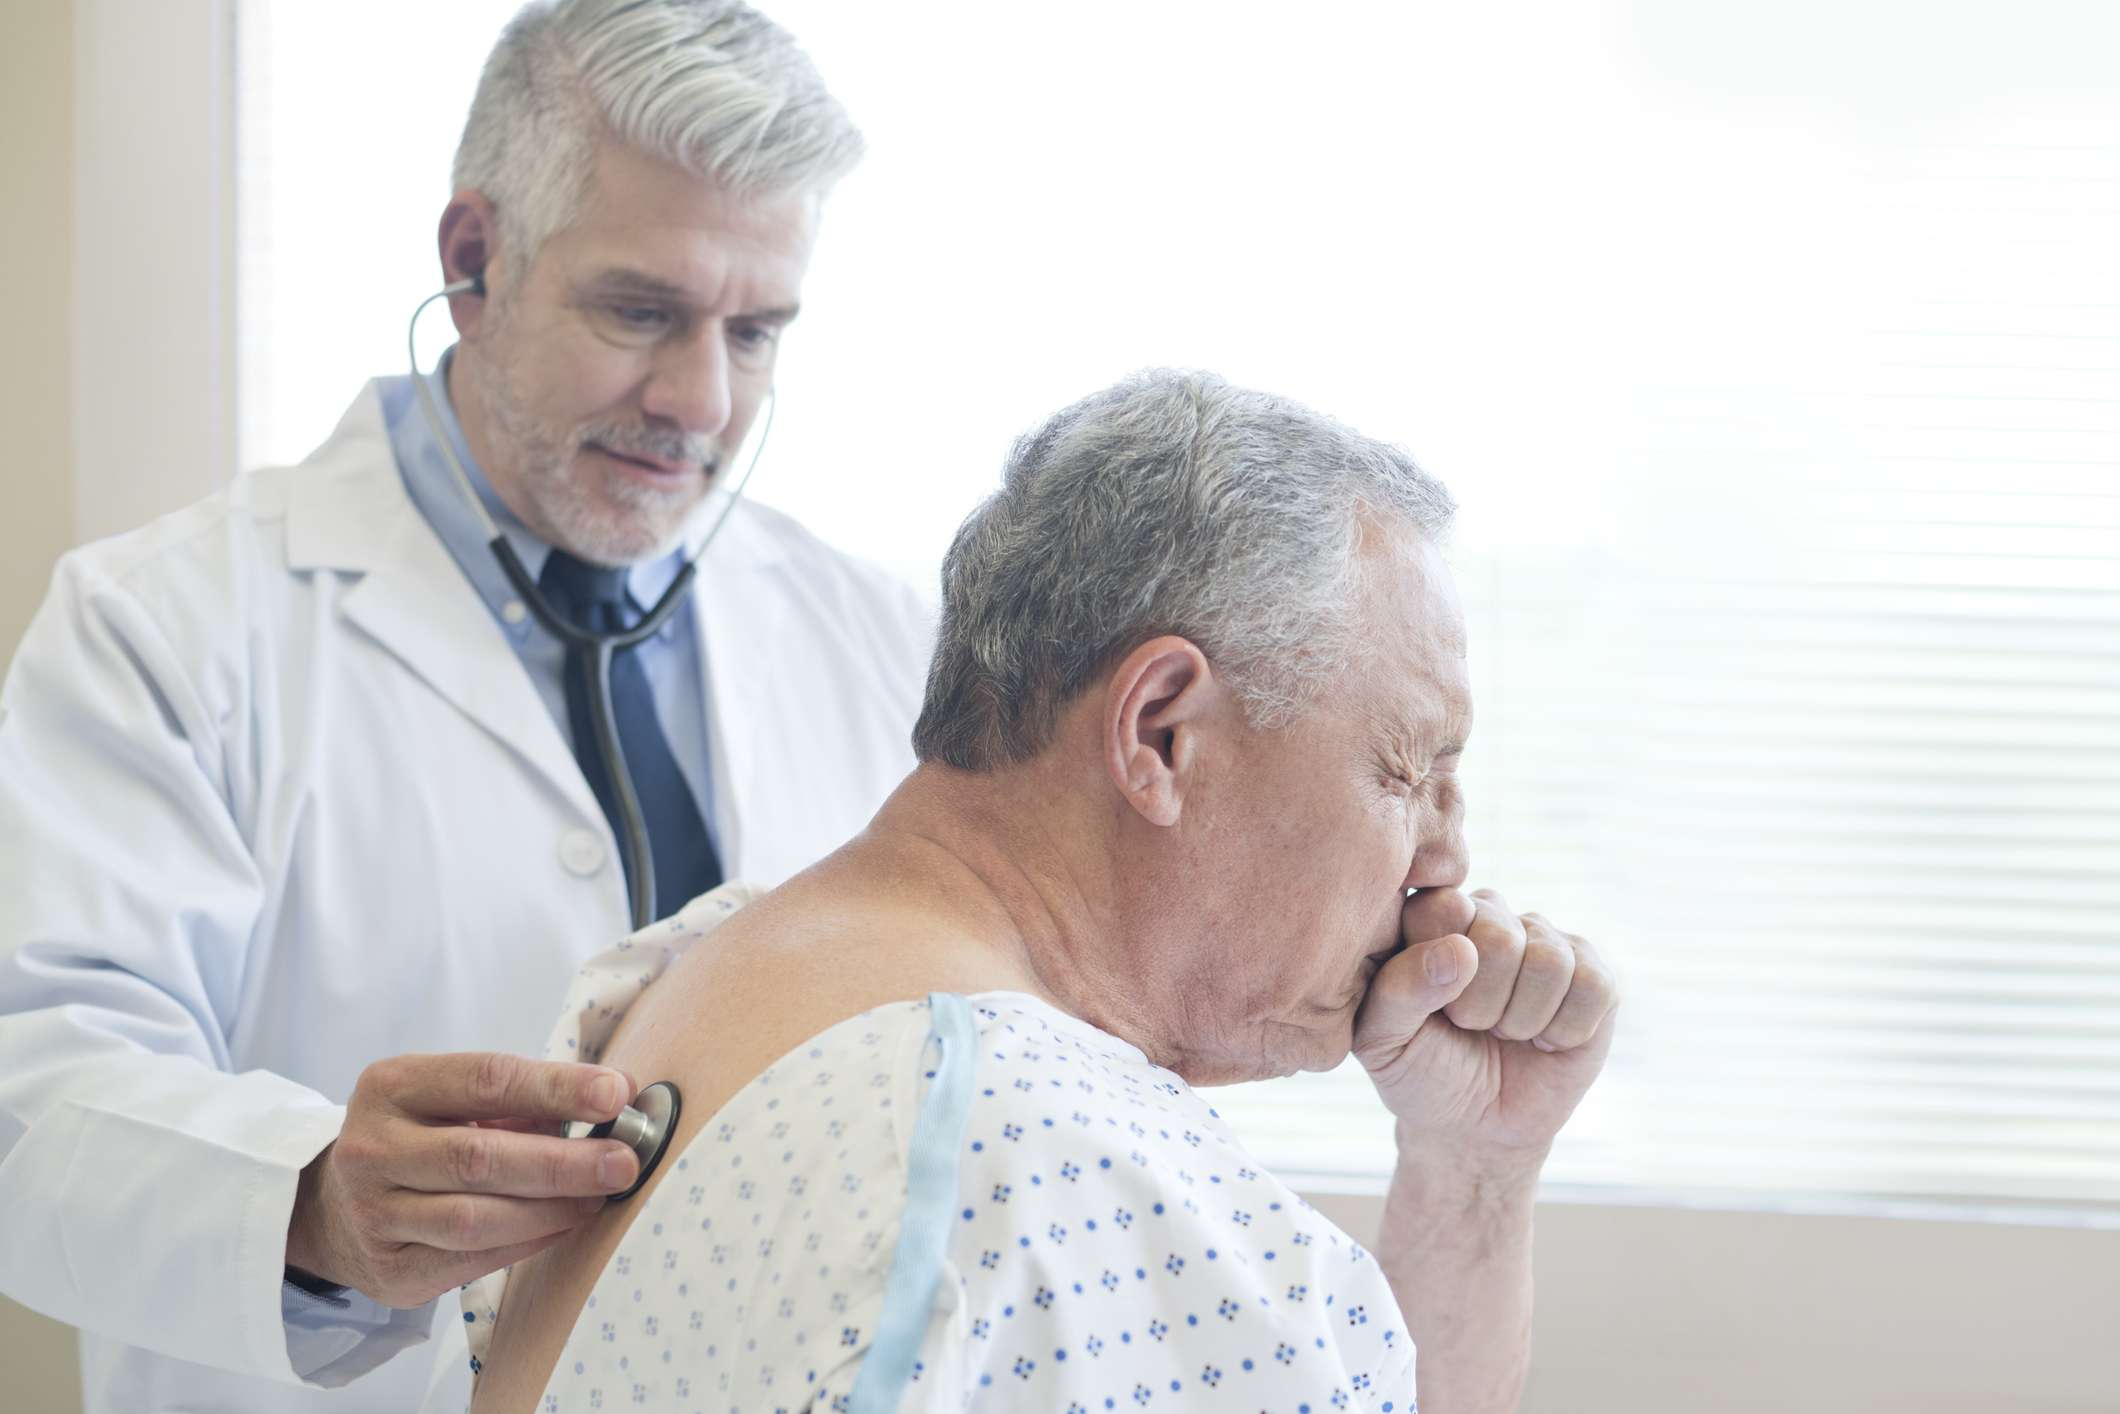 Doctor examining patient for bronchitis